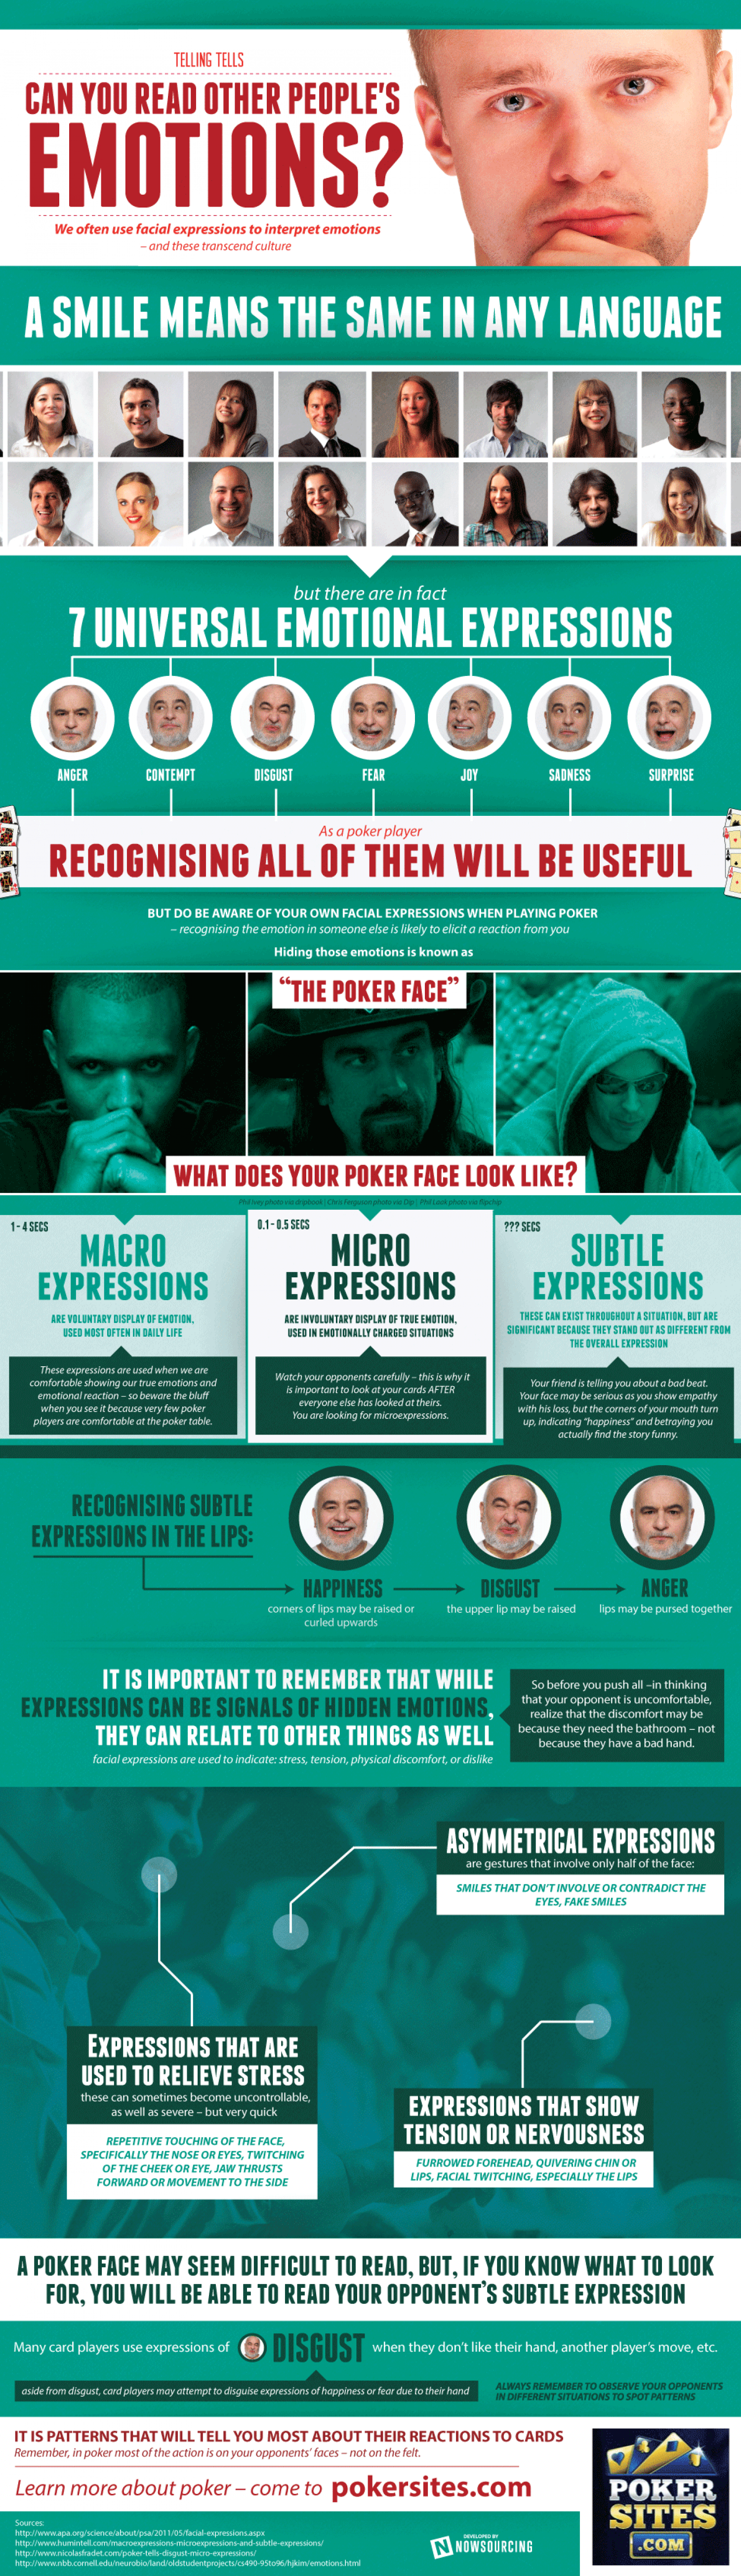 Can You Read Other People's Emotions? Infographic